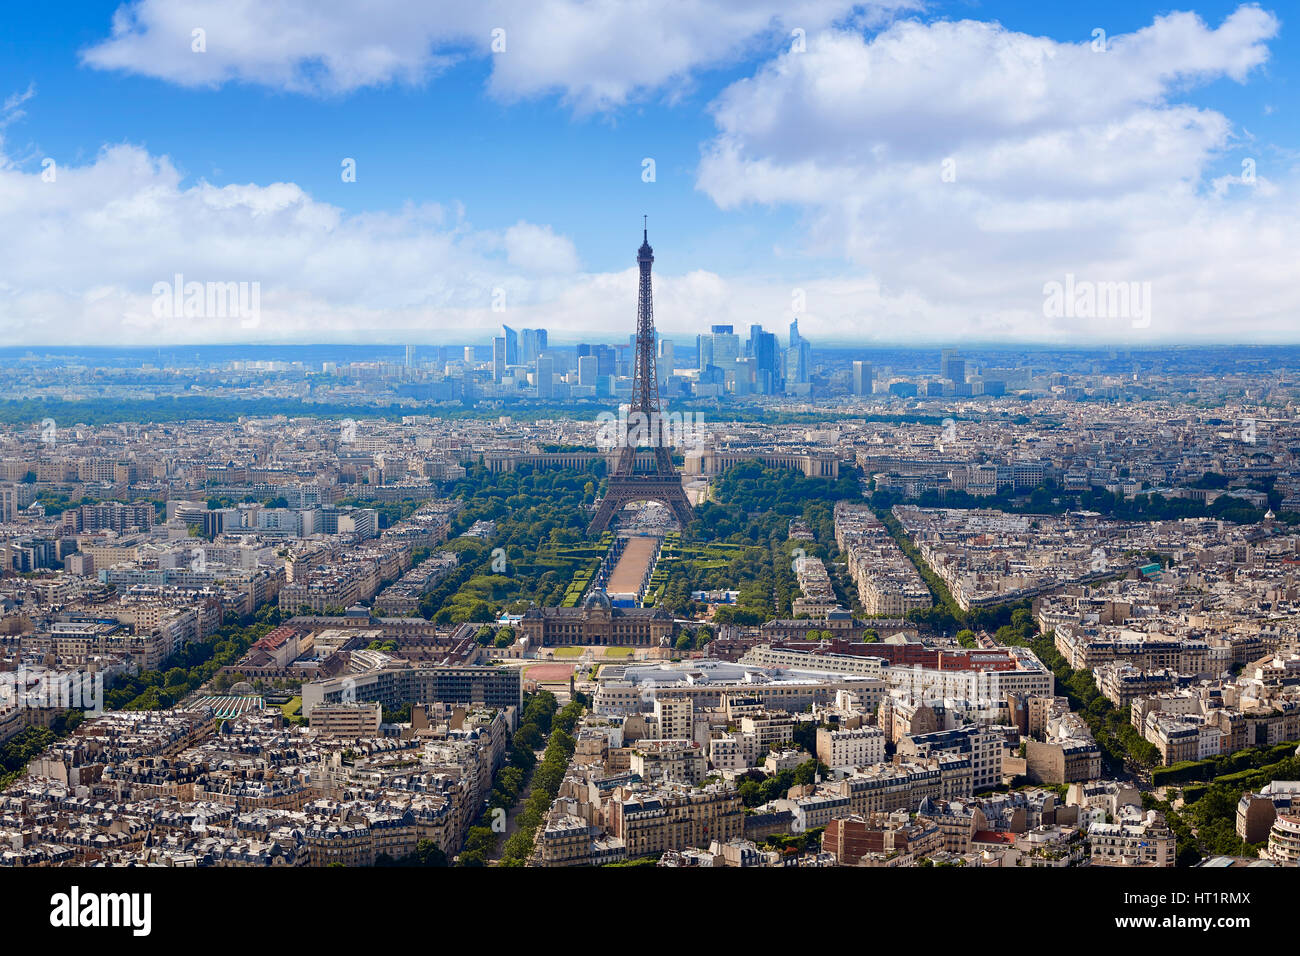 Paris Eiffel tower and skyline aerial view in France Stock Photo